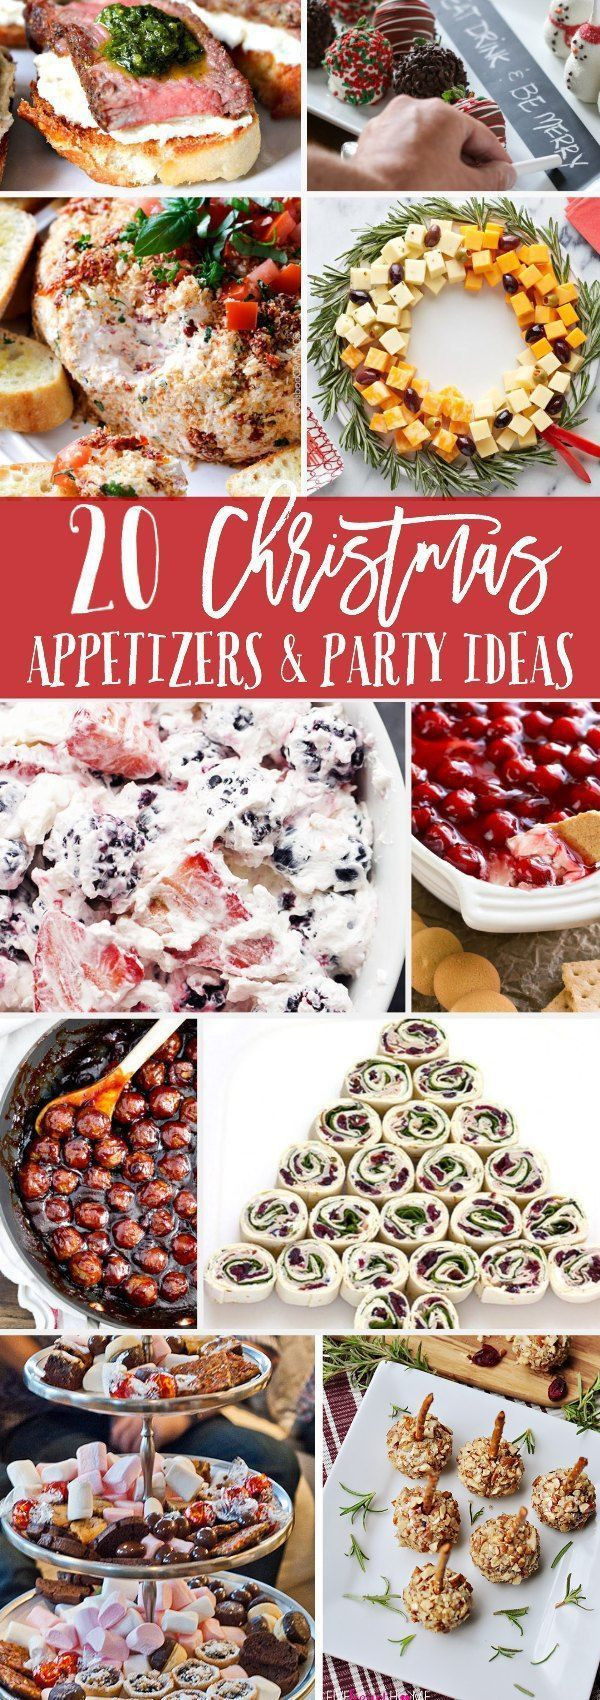 Appetizers For Christmas Eve Party  Top 25 best Christmas party appetizers ideas on Pinterest